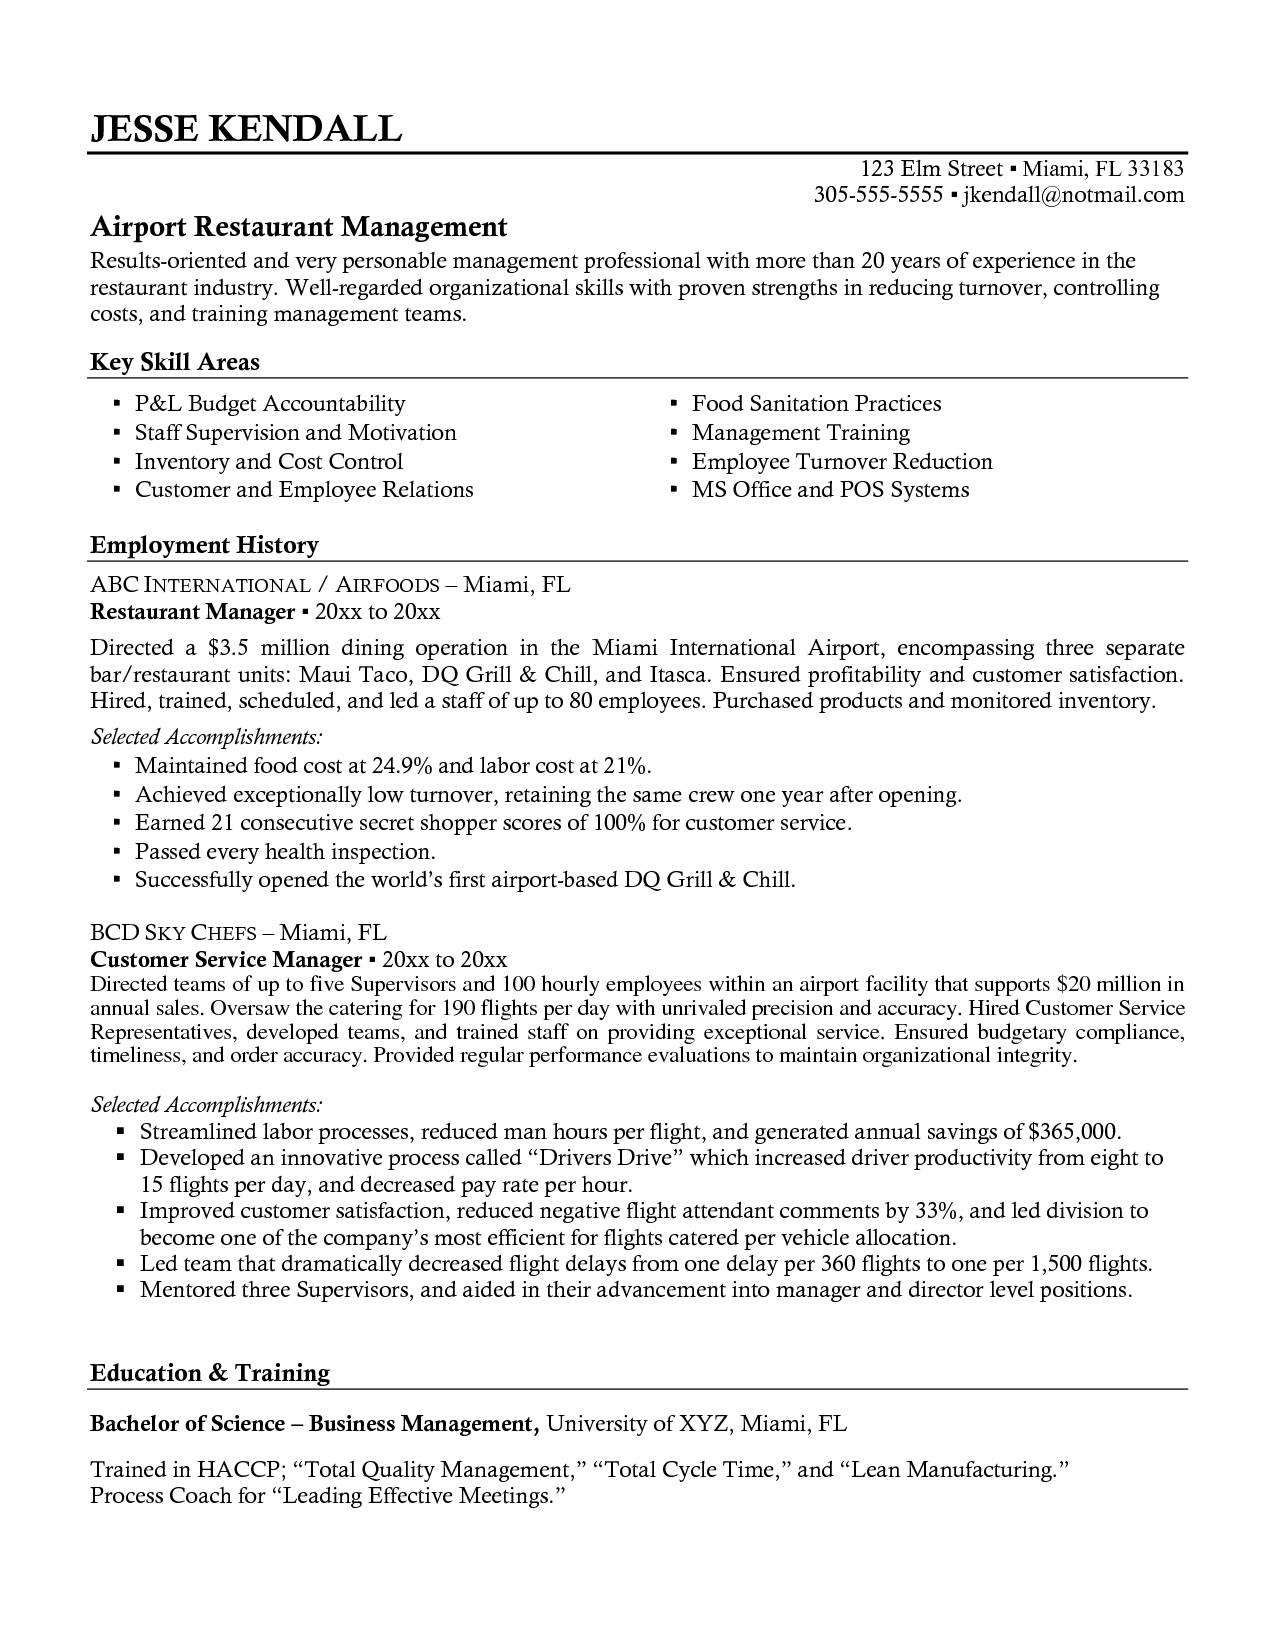 Agile project manager resume inspirational 10 agile